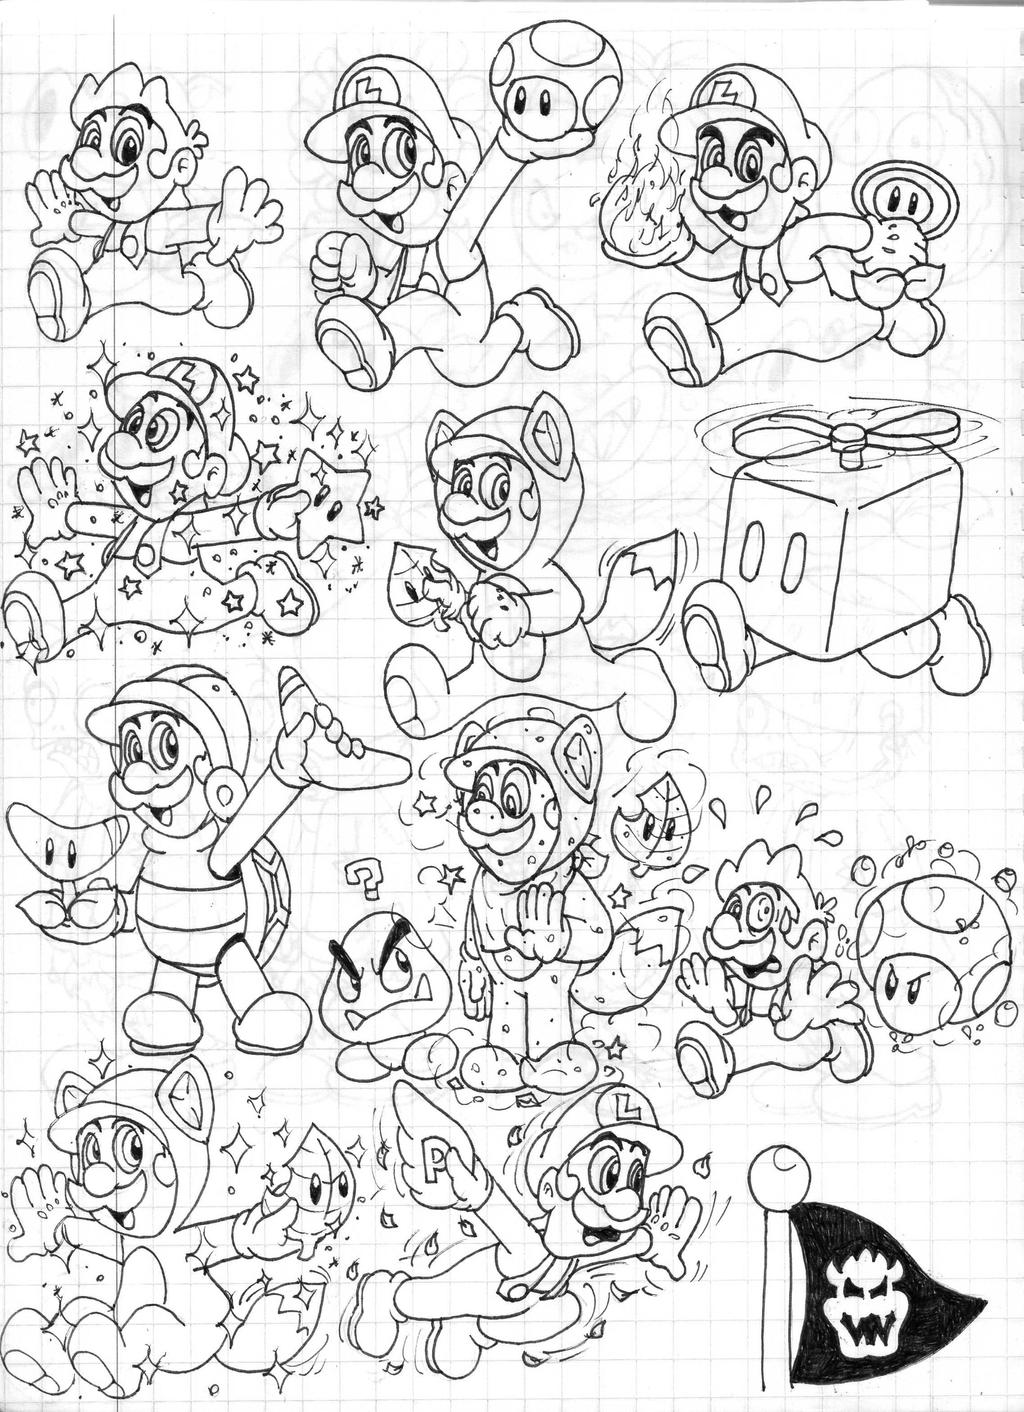 Mario World 3d Coloring Pages